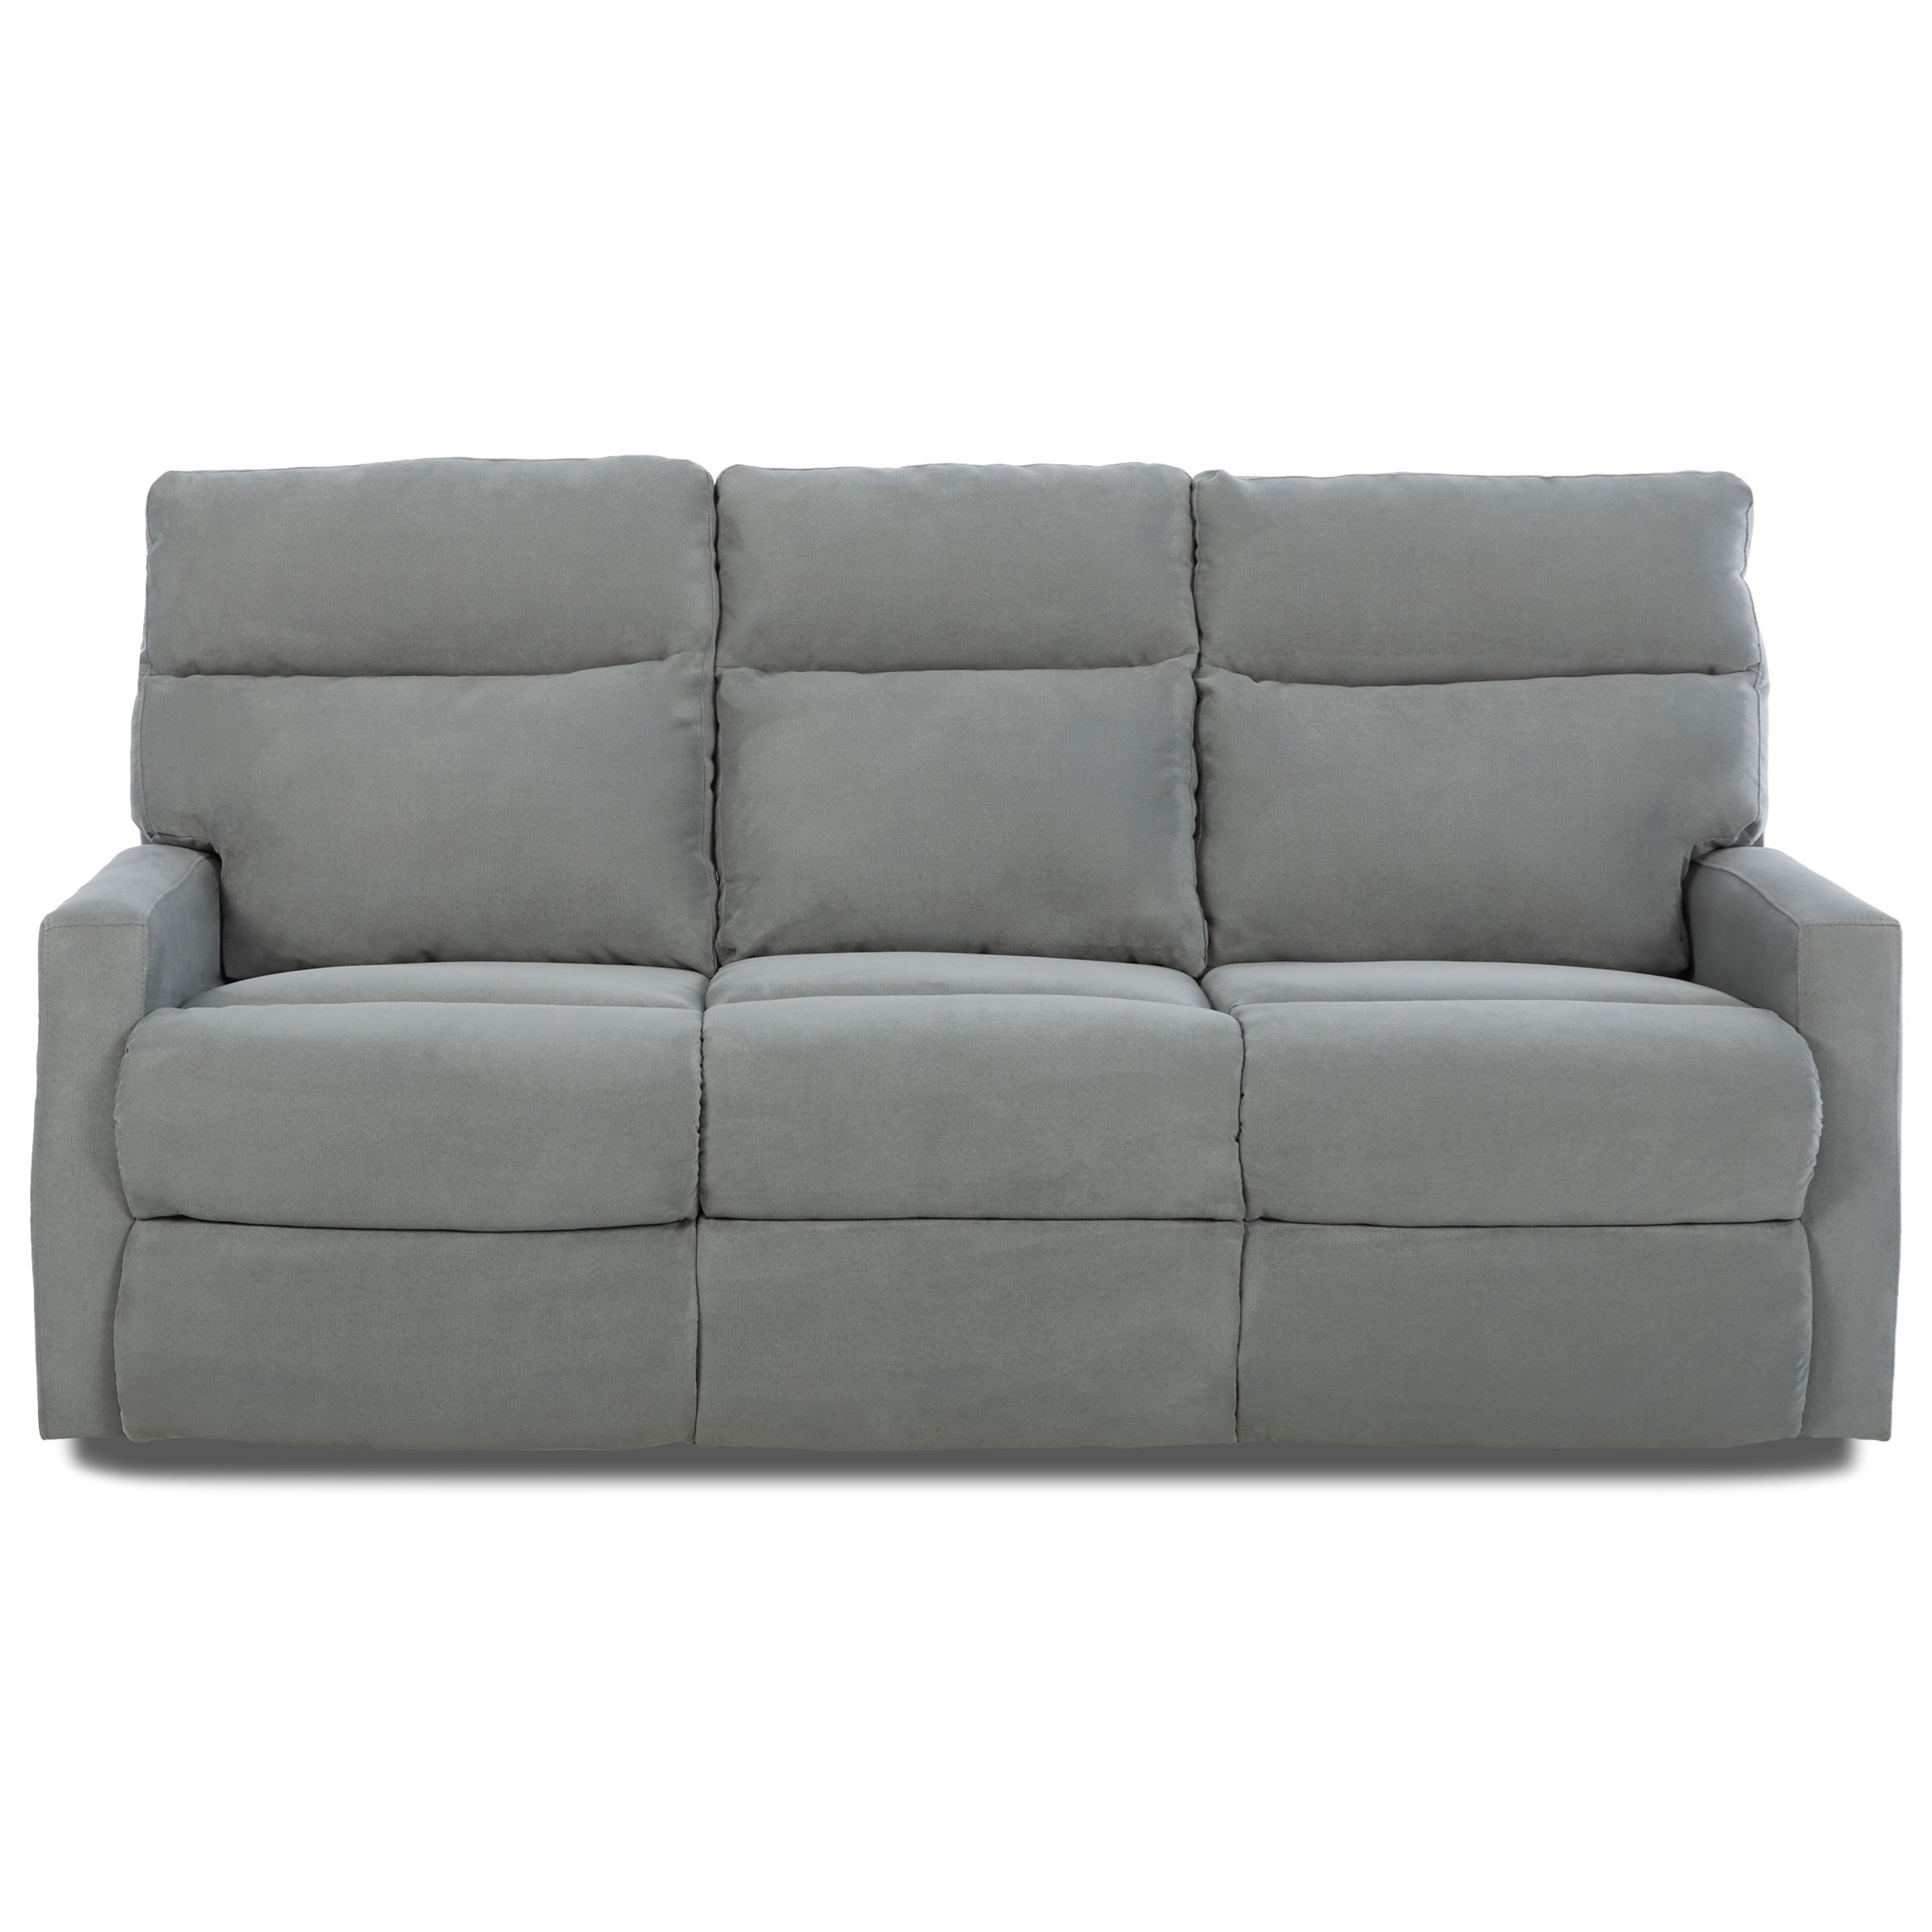 Klaussner Monticello Reclining Sofa - Item Number: 41503 RS-GEO SURF